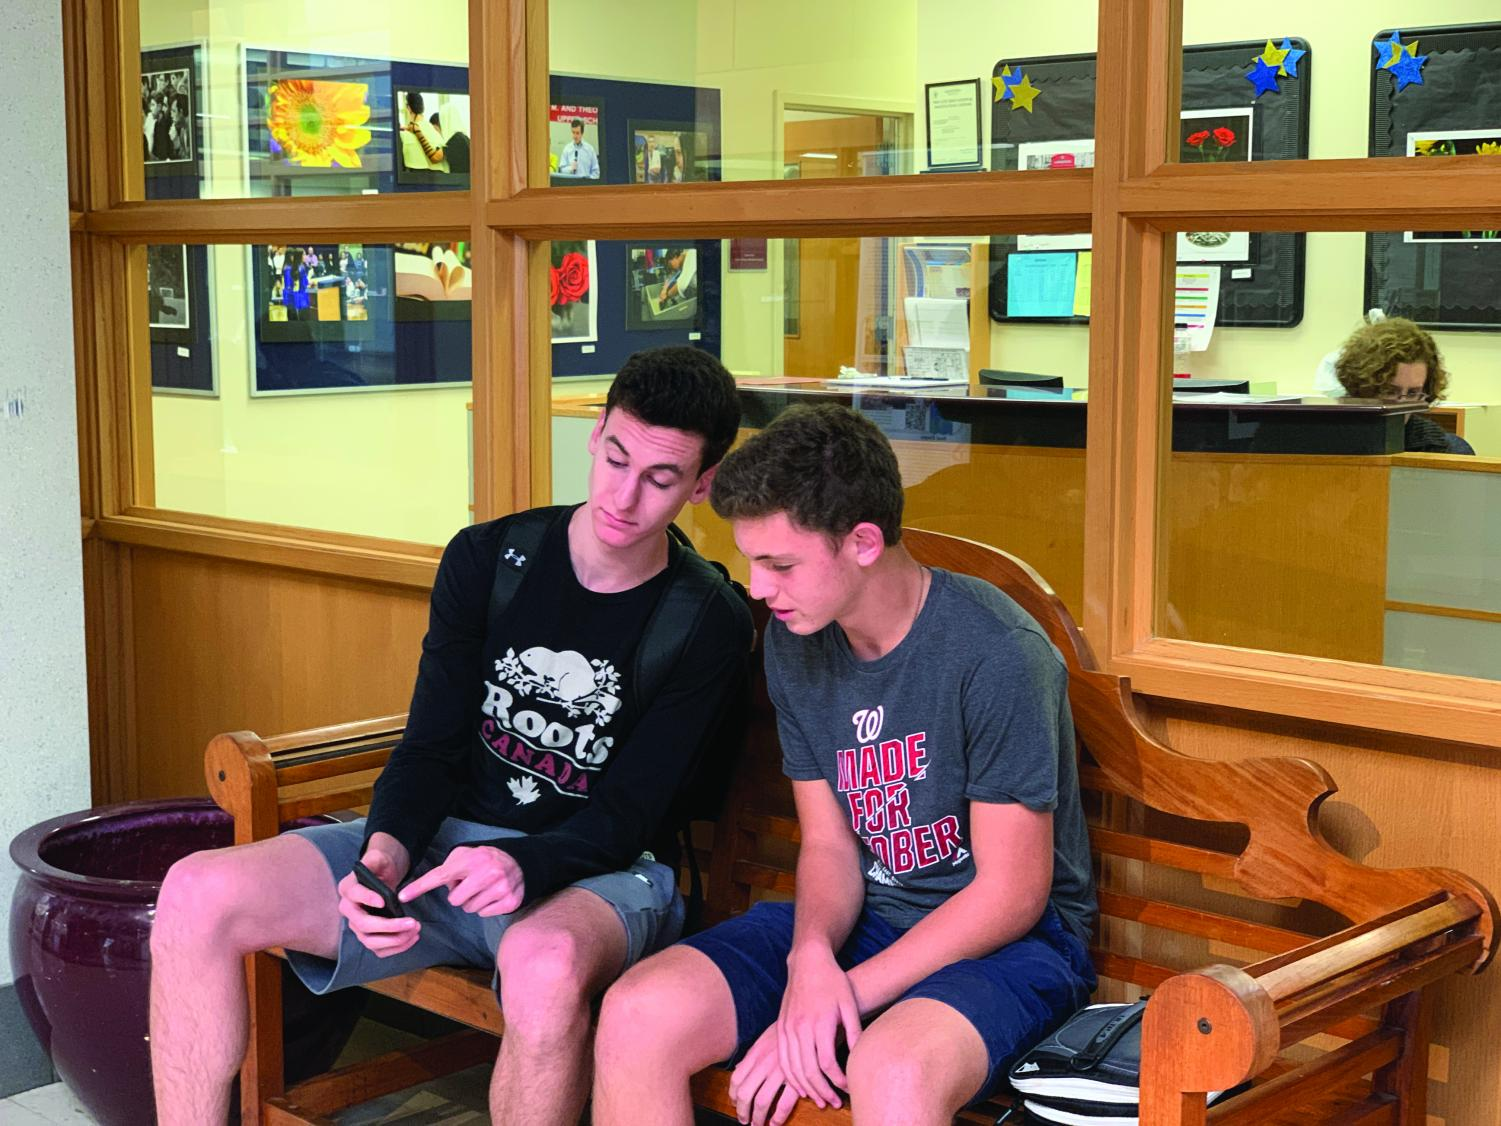 Junior Jacob Rulnick shows his admissions buddy, junior Alex Frame, a post on social media. Frame's previous school, the American Hebrew Academy, shut down over the summer, forcing him to quickly apply to a new school. Admissions  buddies  help ease the transition for new students by helping them with schedules, navigation and integration into their grade.